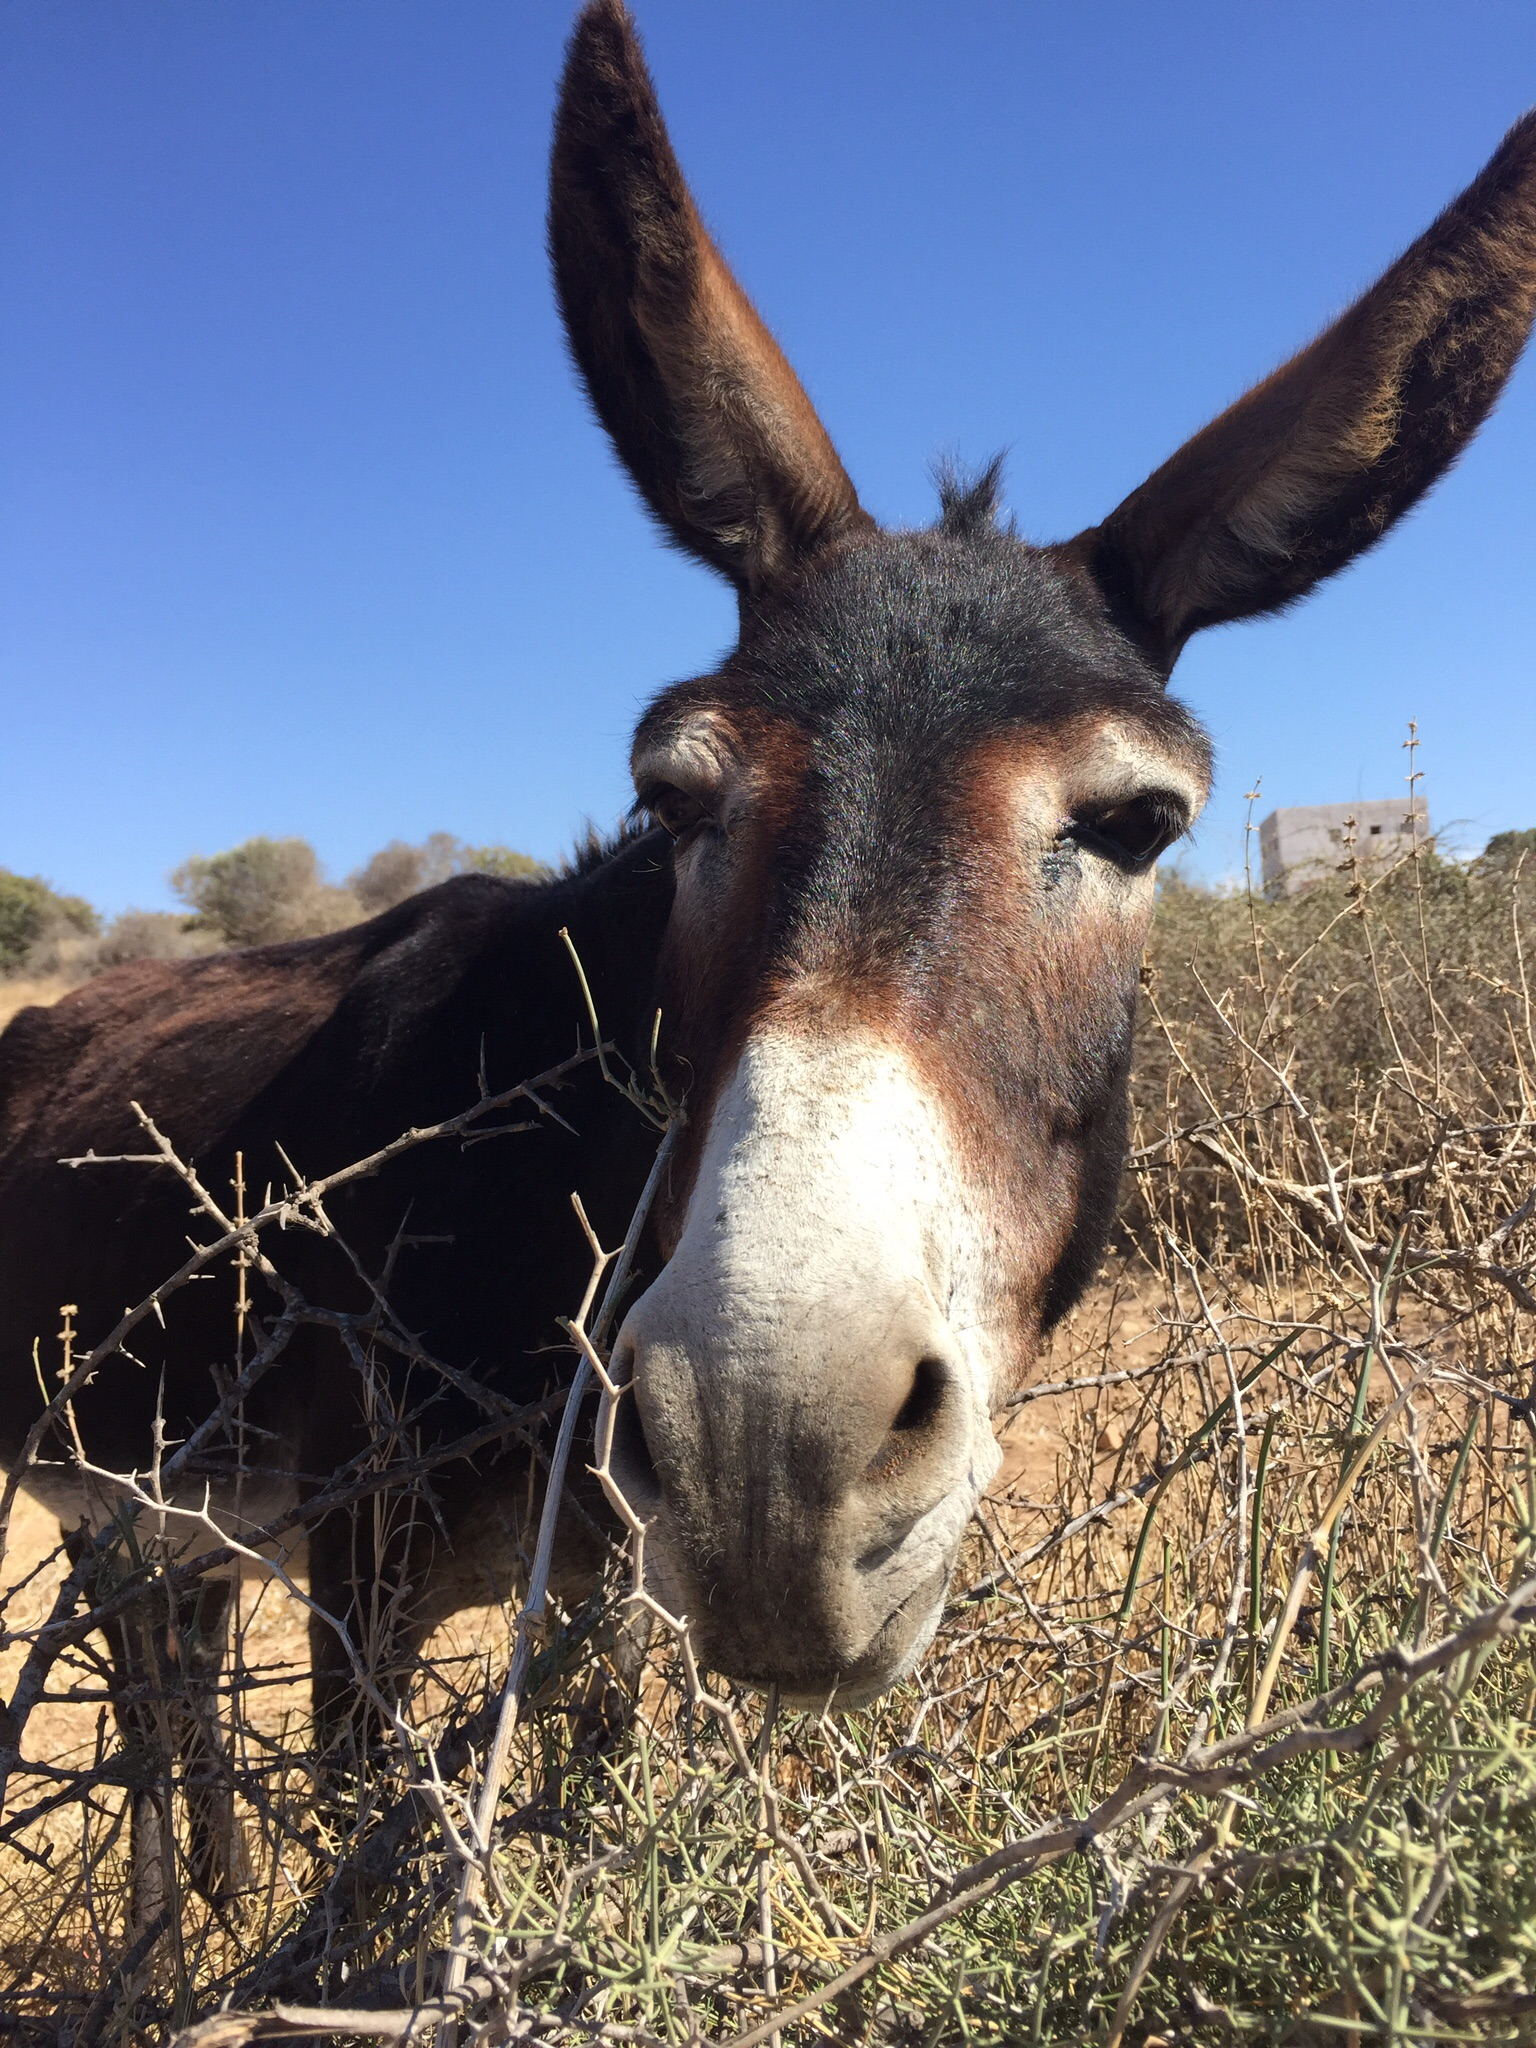 A happy rural donkey in Tafedna Village, south of Essaouira.